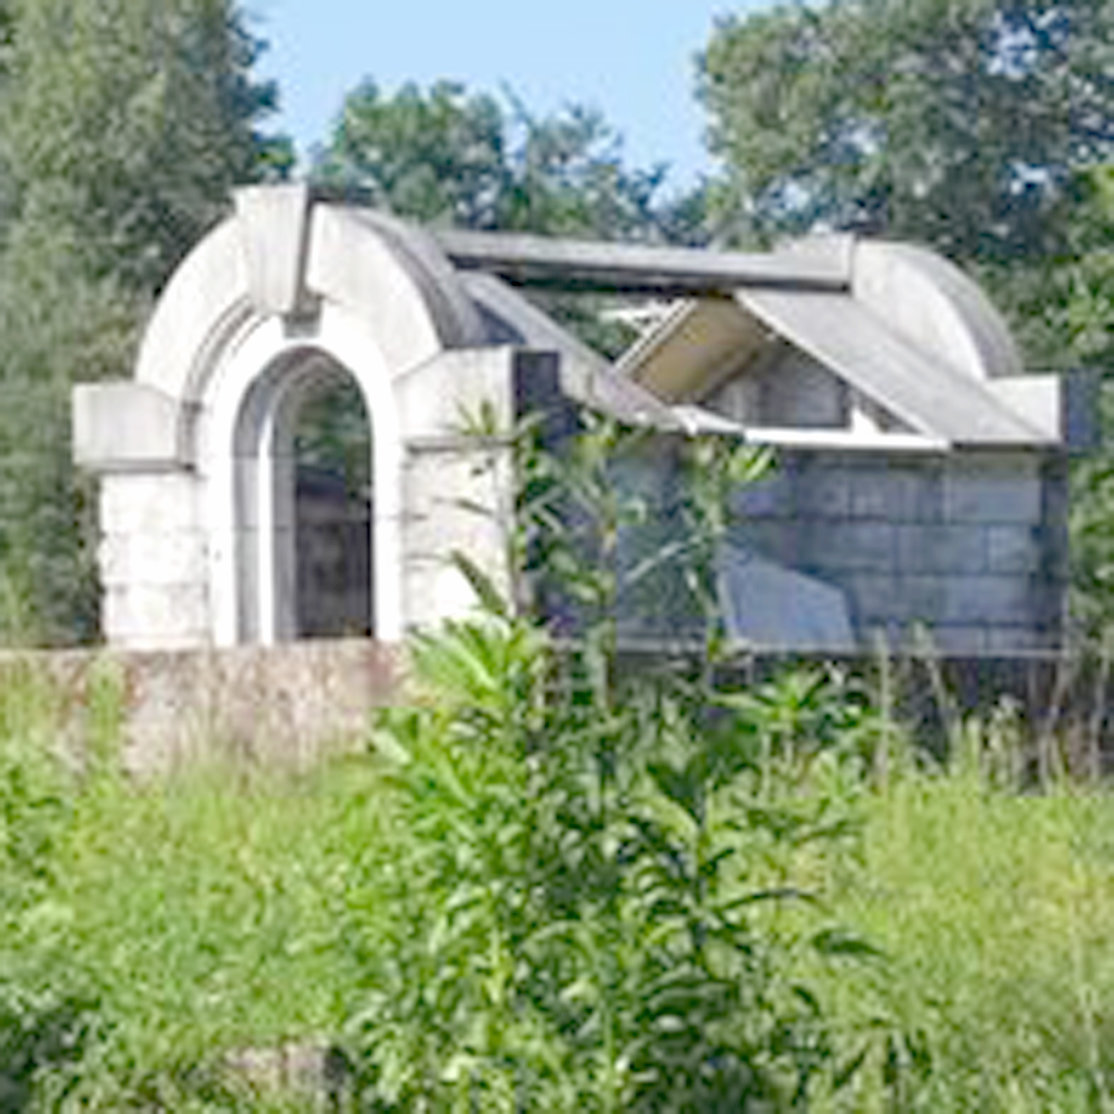 On the road from Etowah to Tellico Plains sits this mausoleum, which was built by Eliza Leonard for her late husband following his death. Within the mausoleum was not only Dr. Leonard's coffin, but also Eliza's, which came with a glass top that she would climb into and pose as a corpse for visitors.